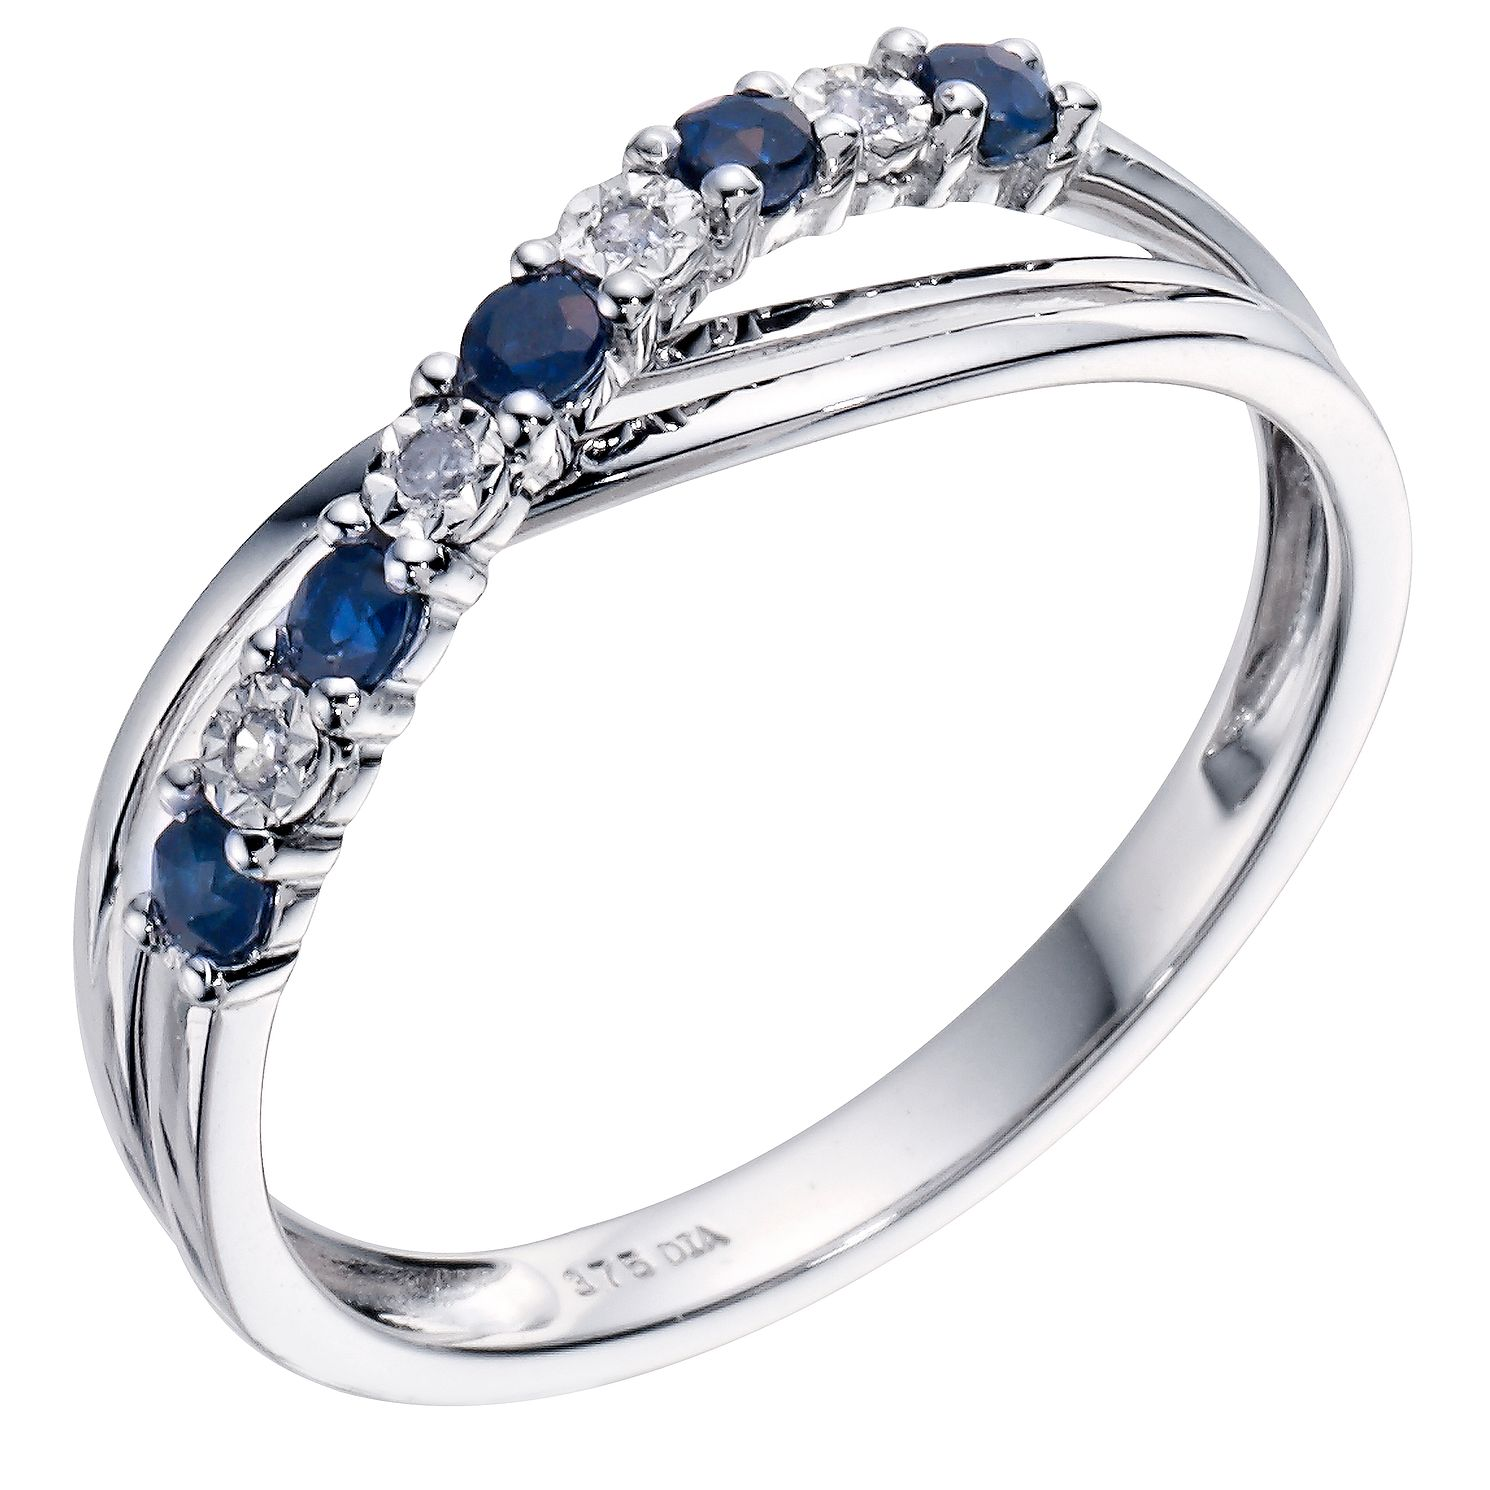 h samuel number and ring sapphire cluster product diamond d rings webstore ceylon saffire gold